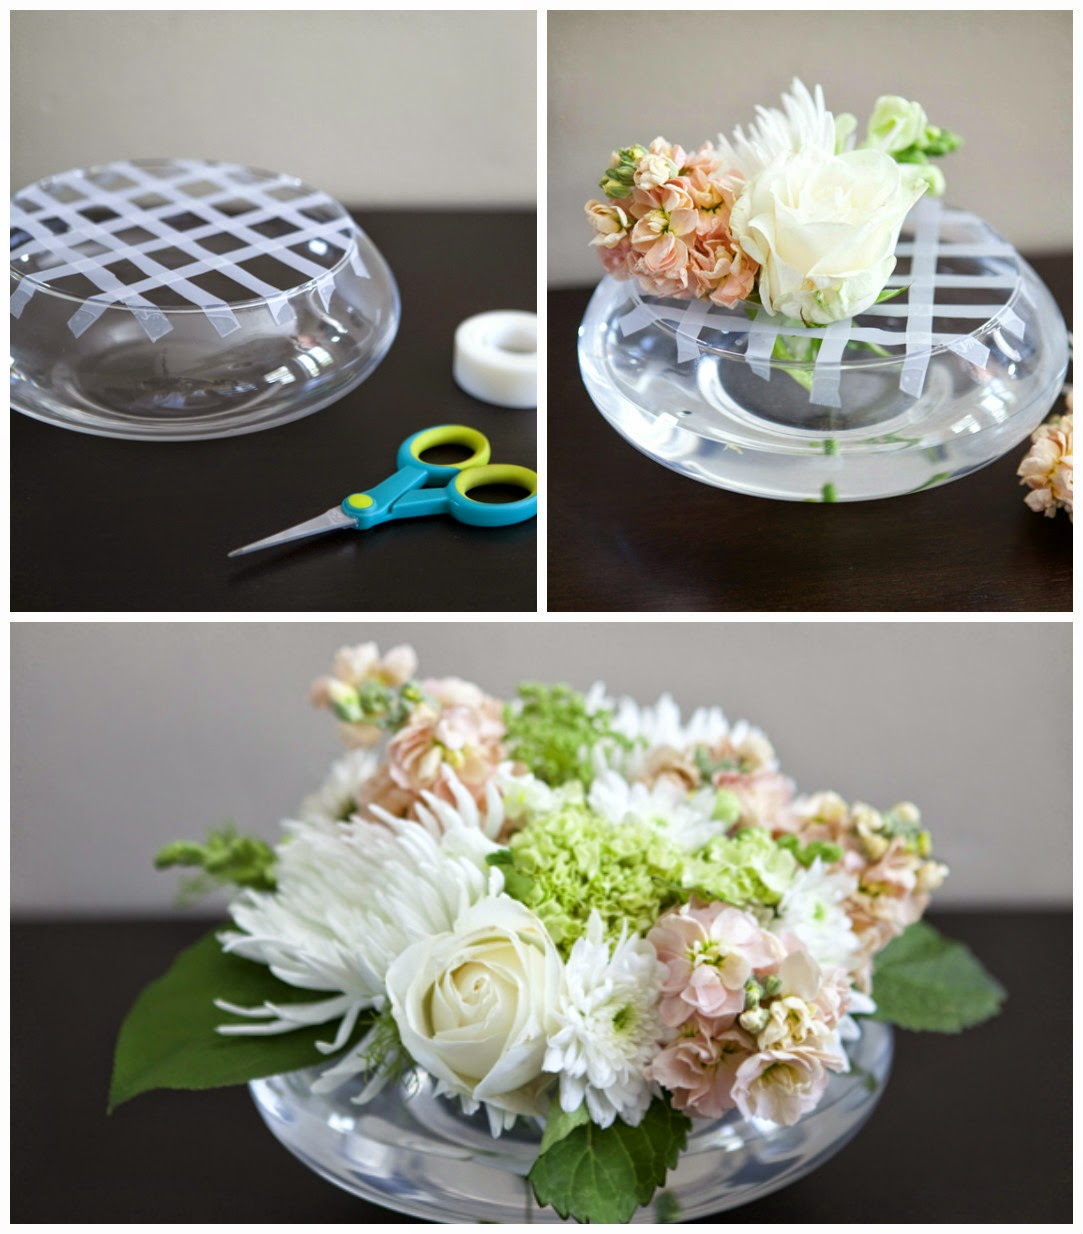 http://somethingturquoise.com/2011/08/12/diy-flower-arrangement/